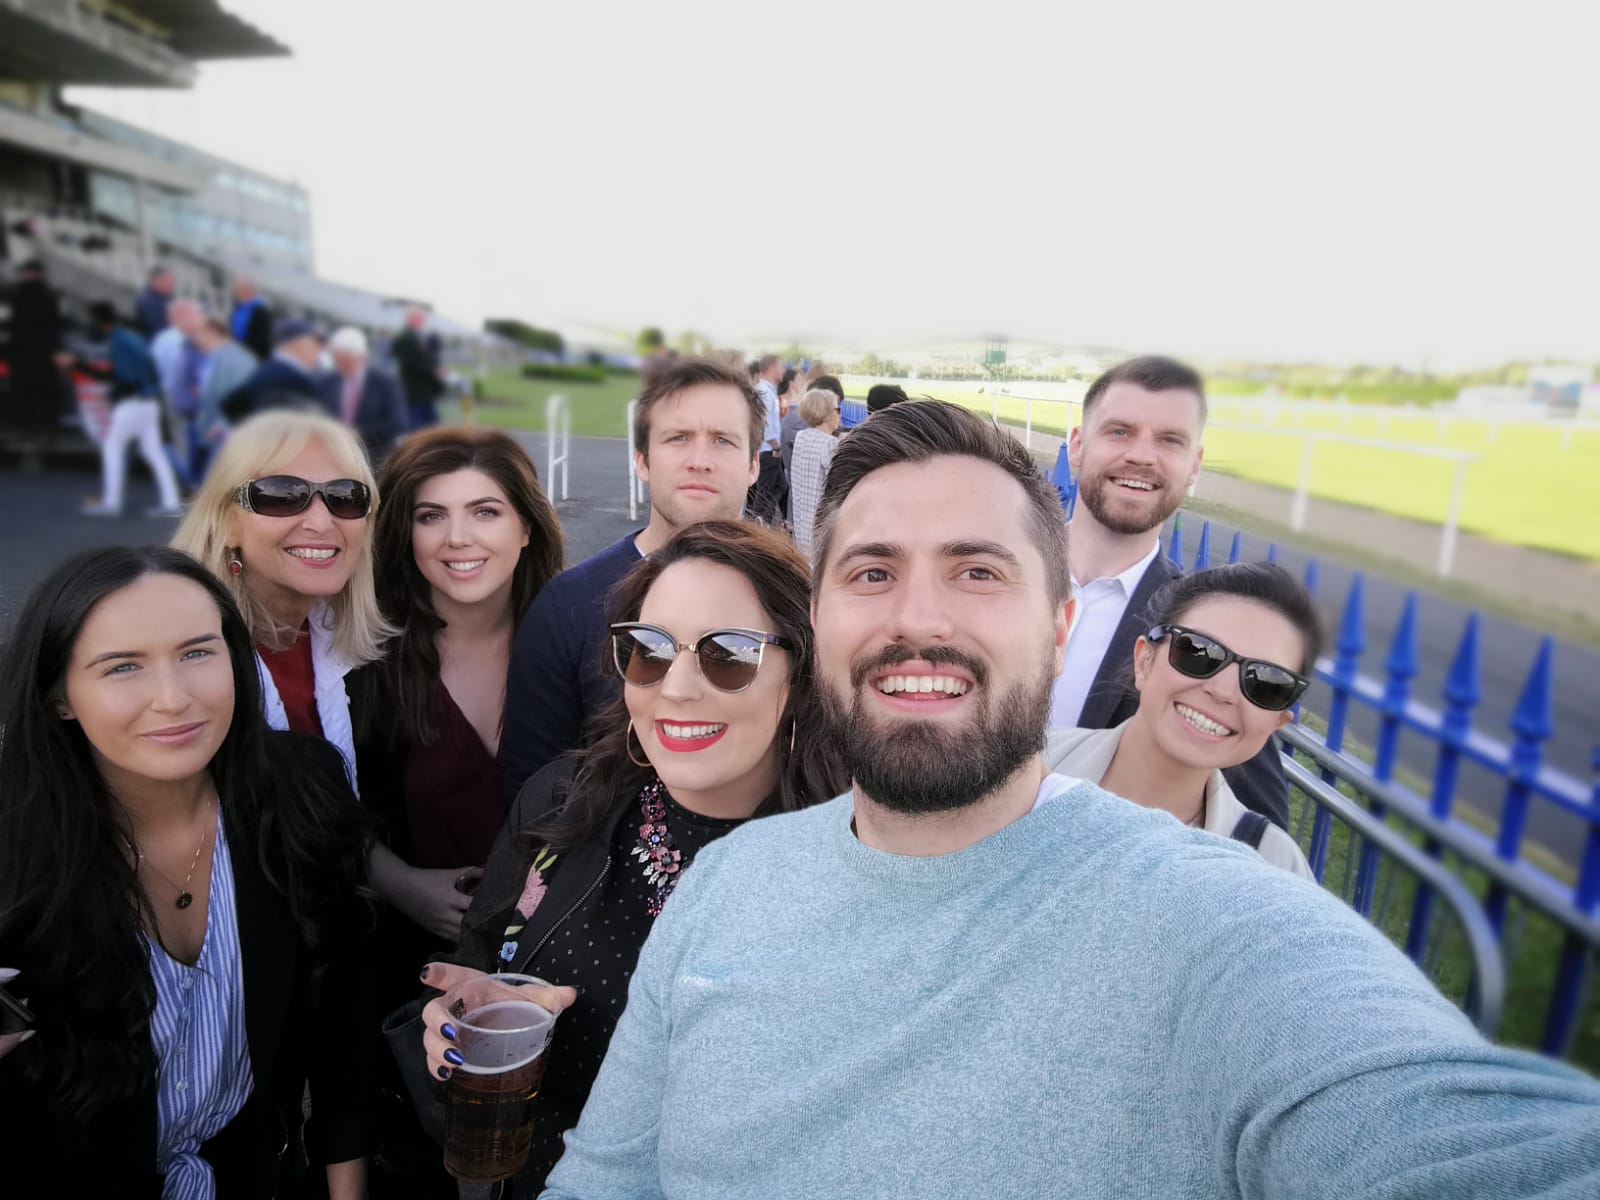 Group at the races